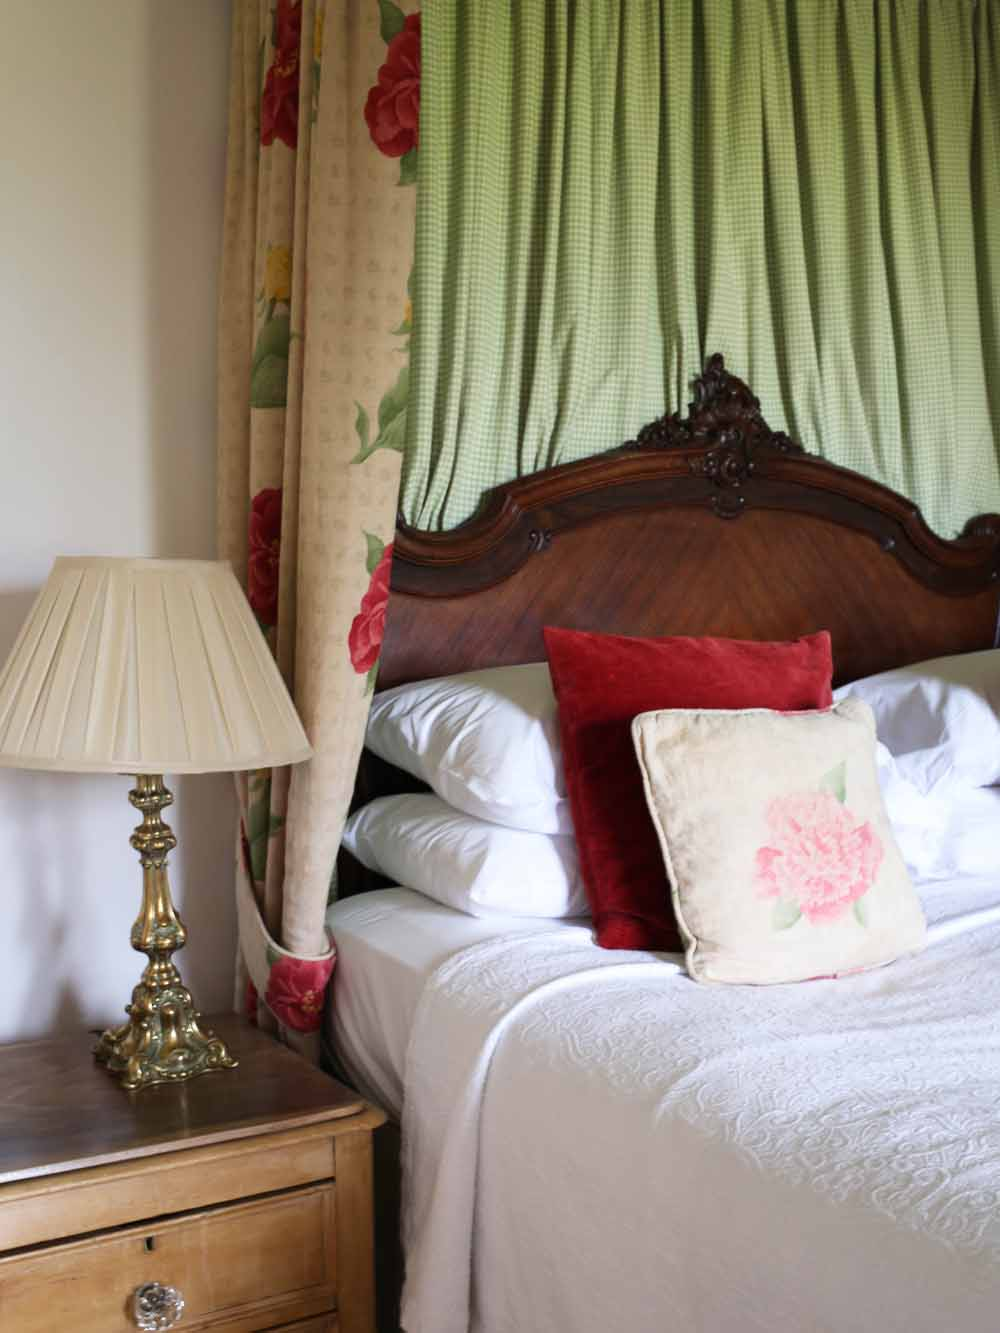 Four poster bed | The Inn at Whitewell